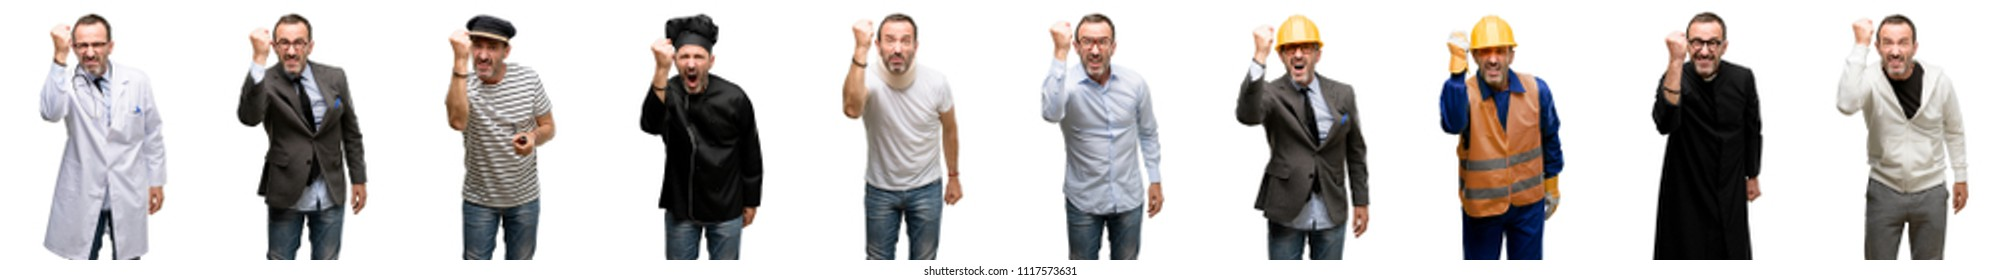 Senior man, different professionals irritated and angry expressing negative emotion, annoyed with someone